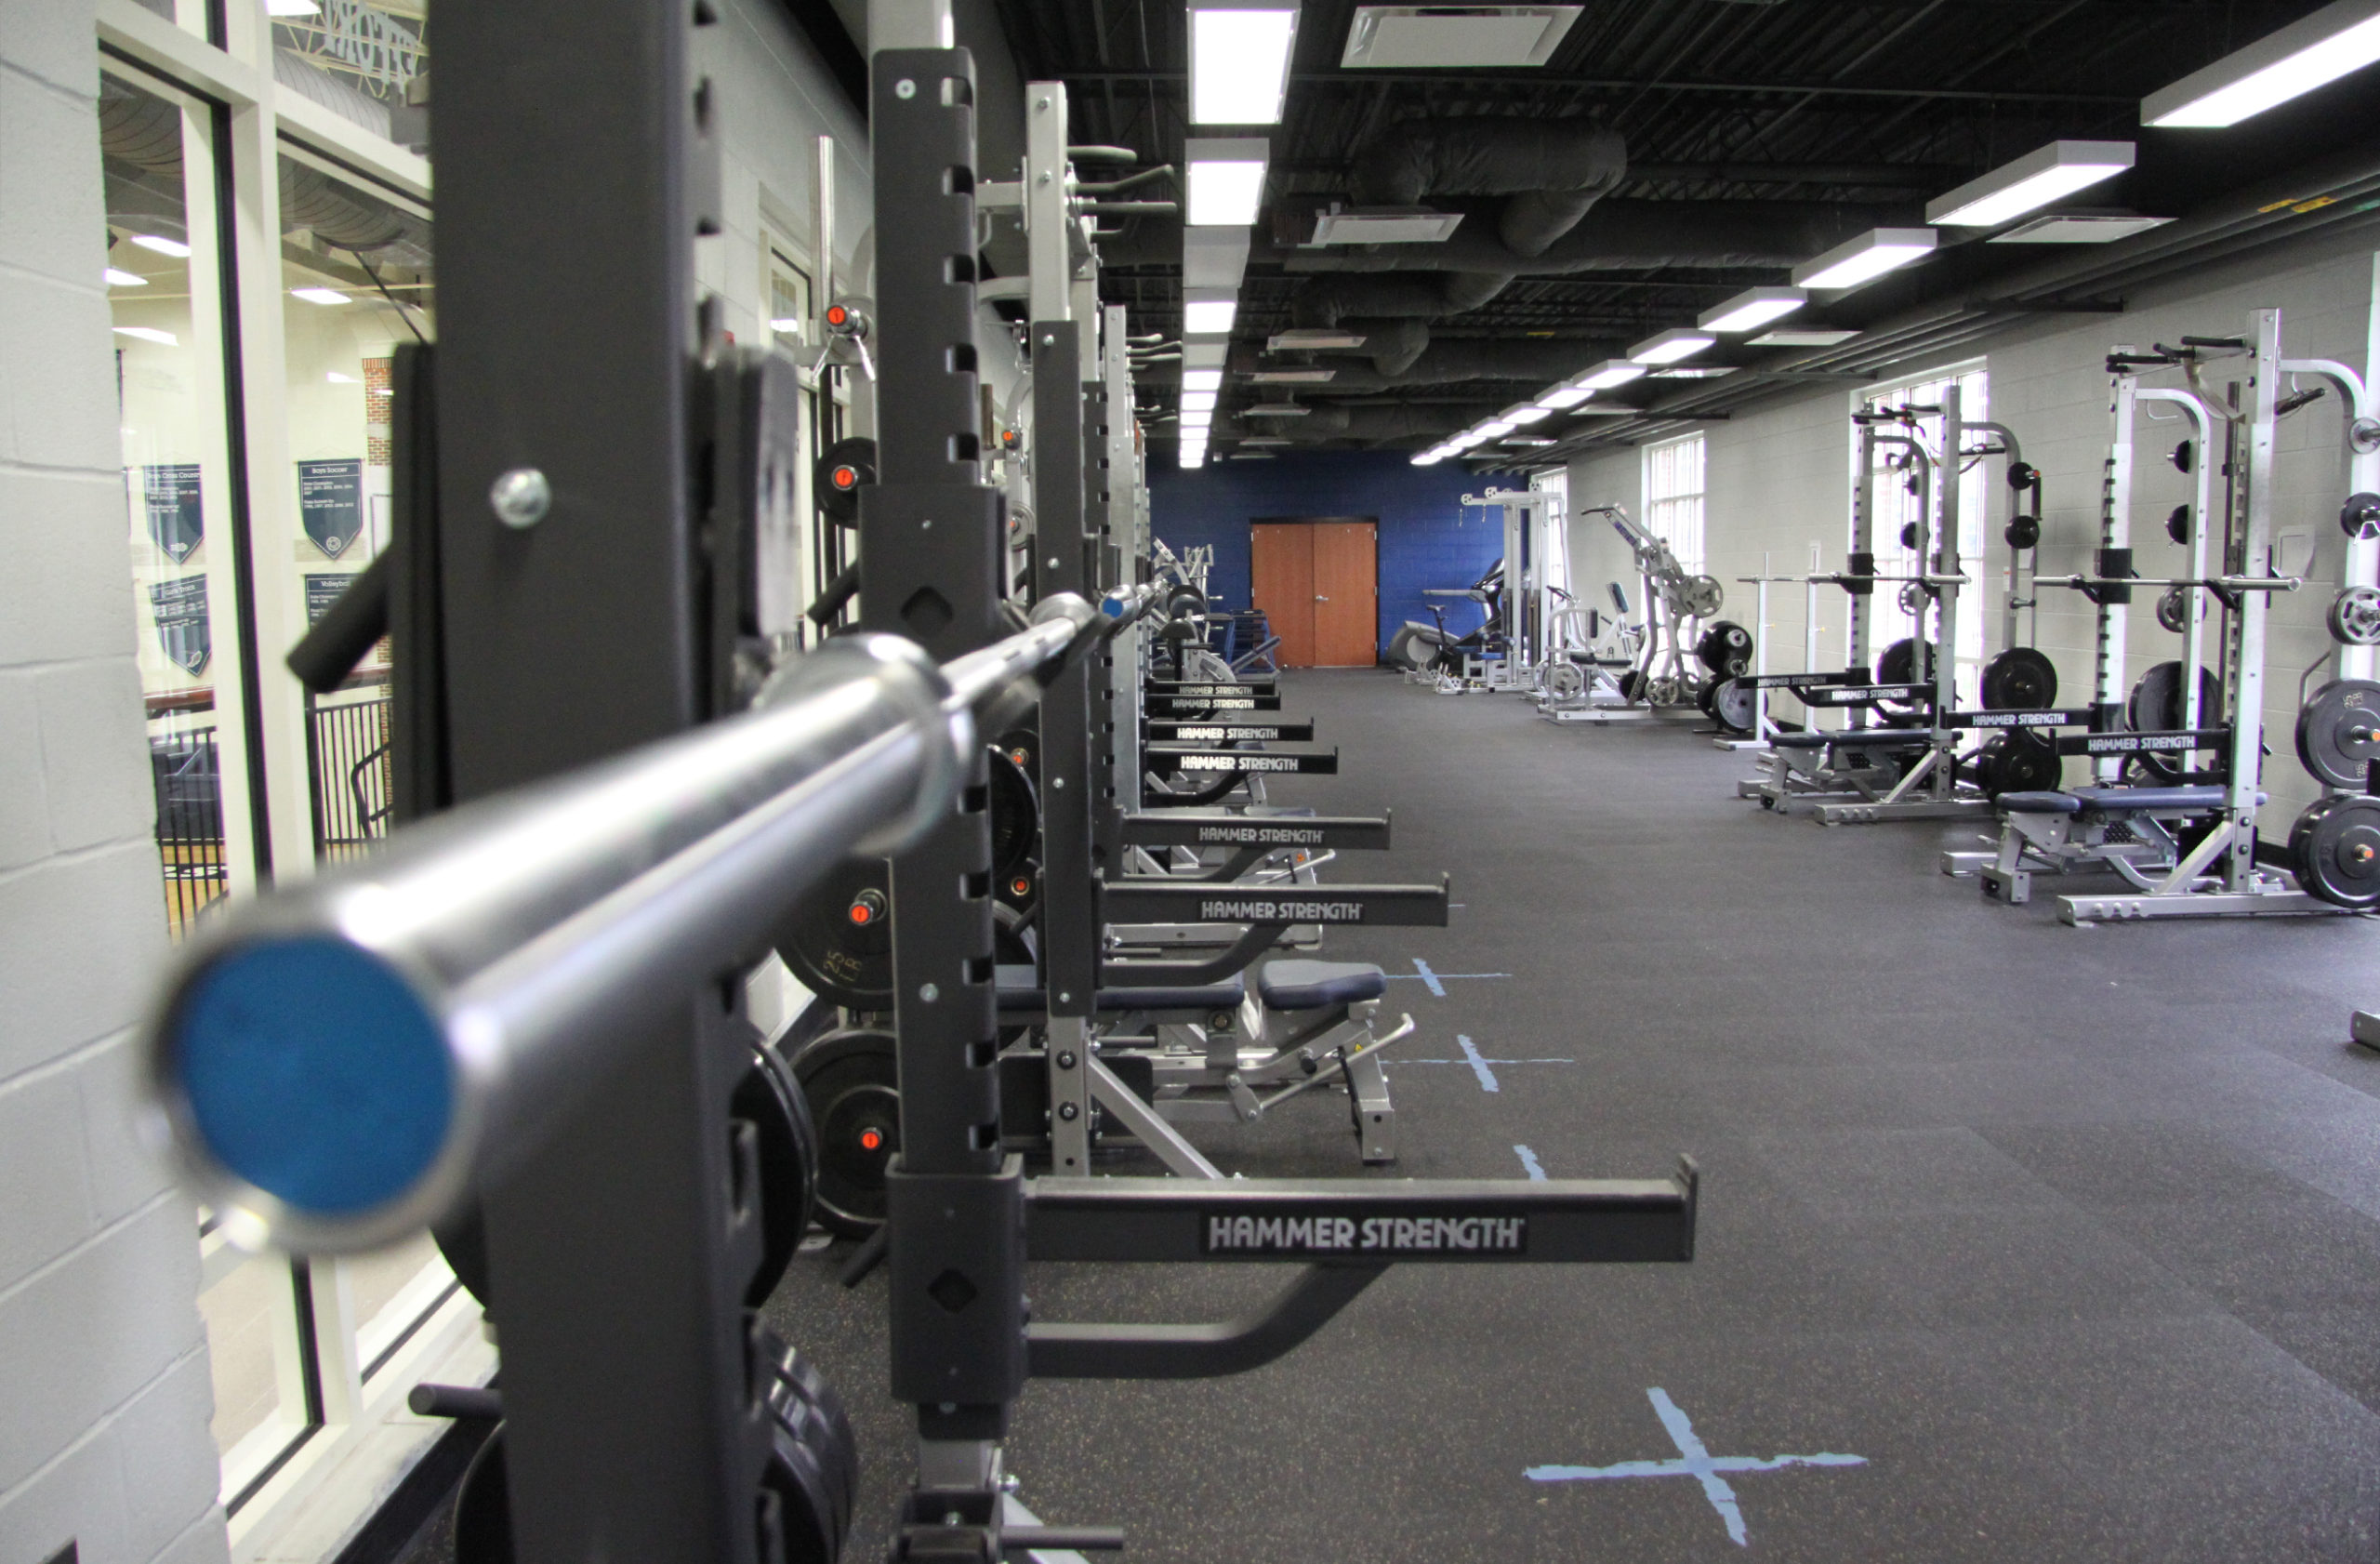 WeightTraining Room Garth Campus